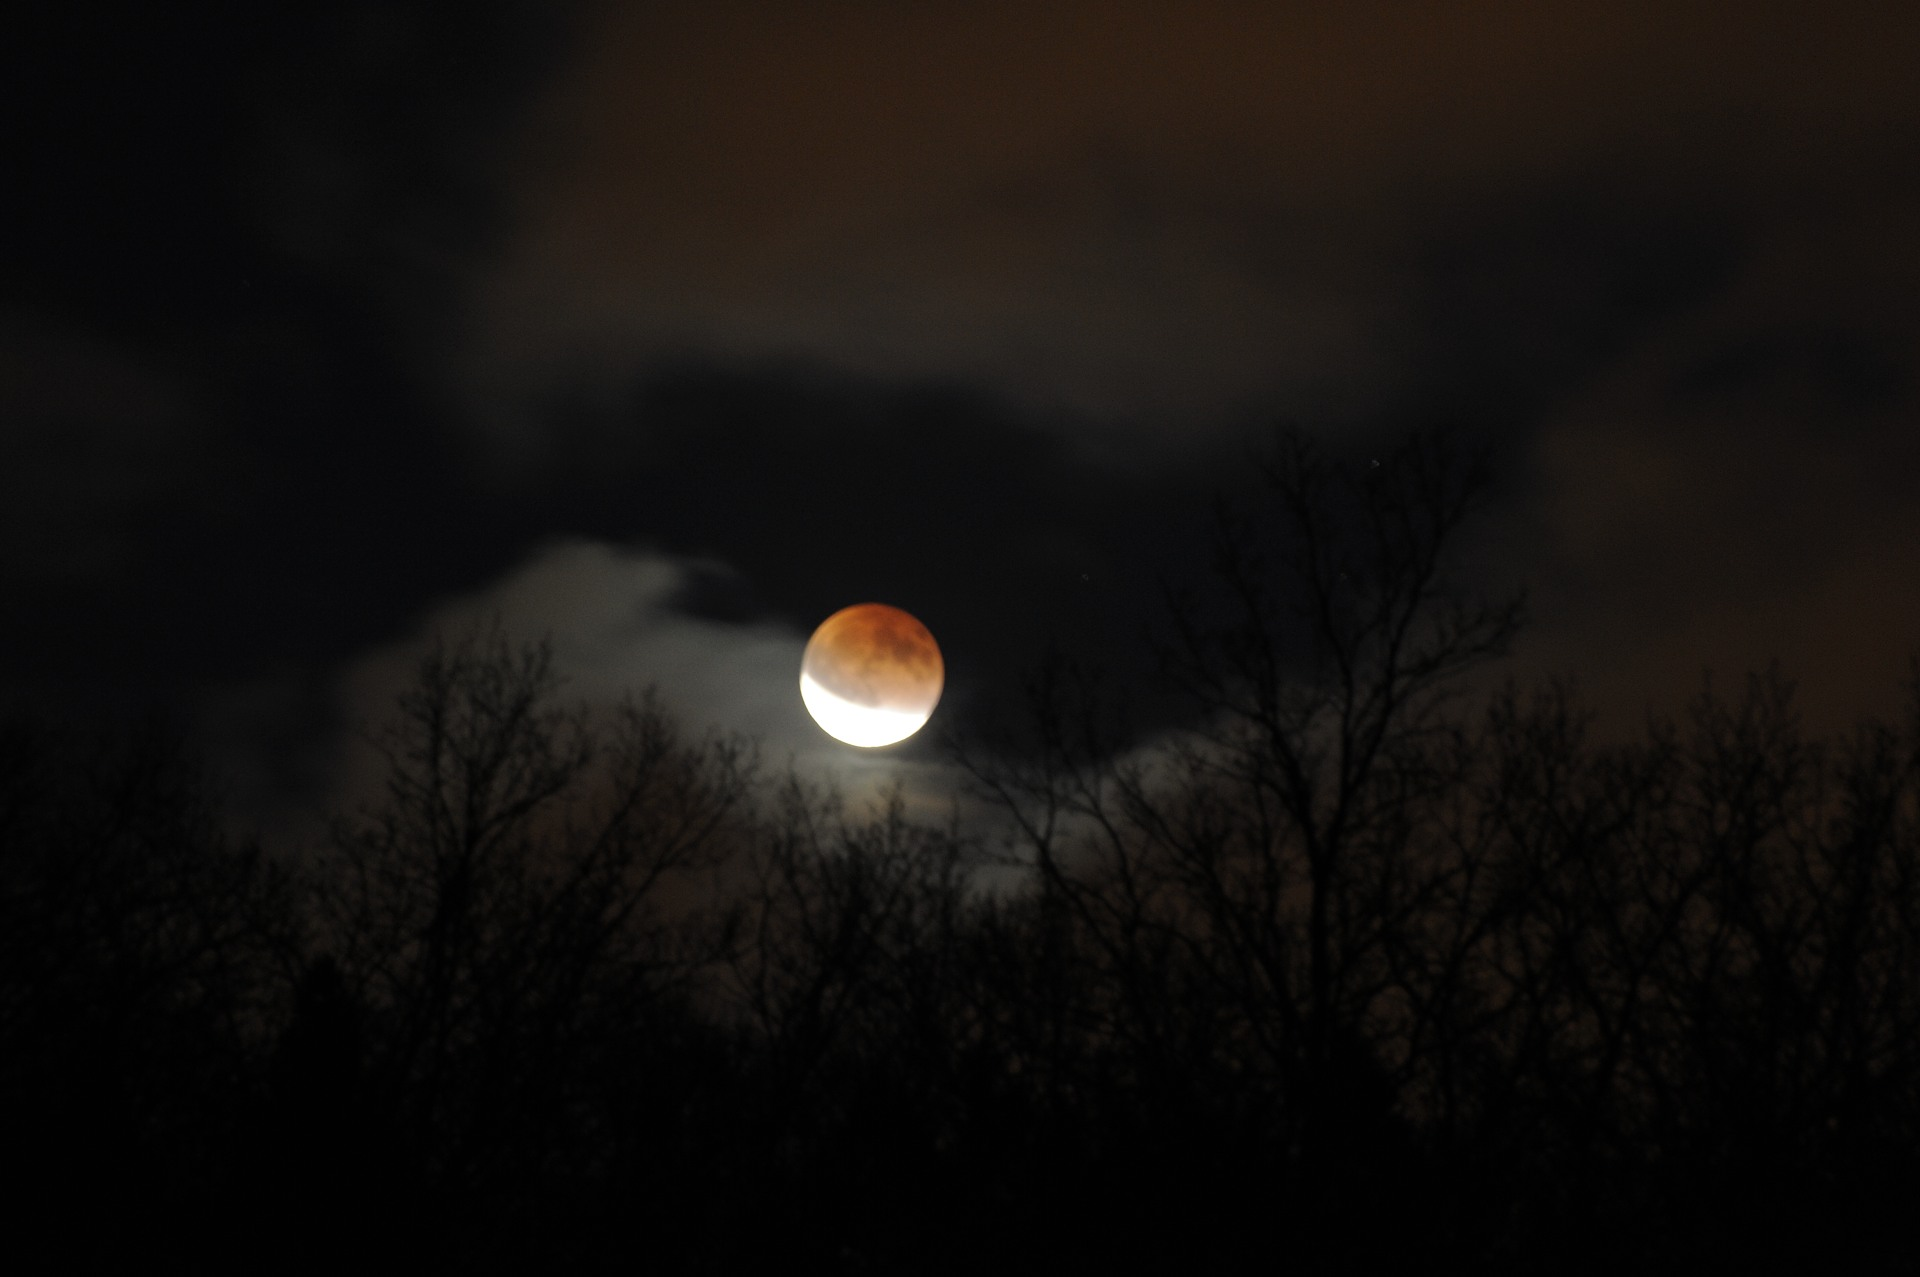 Lunar eclipse 2011-12-10 by Magnus Norden